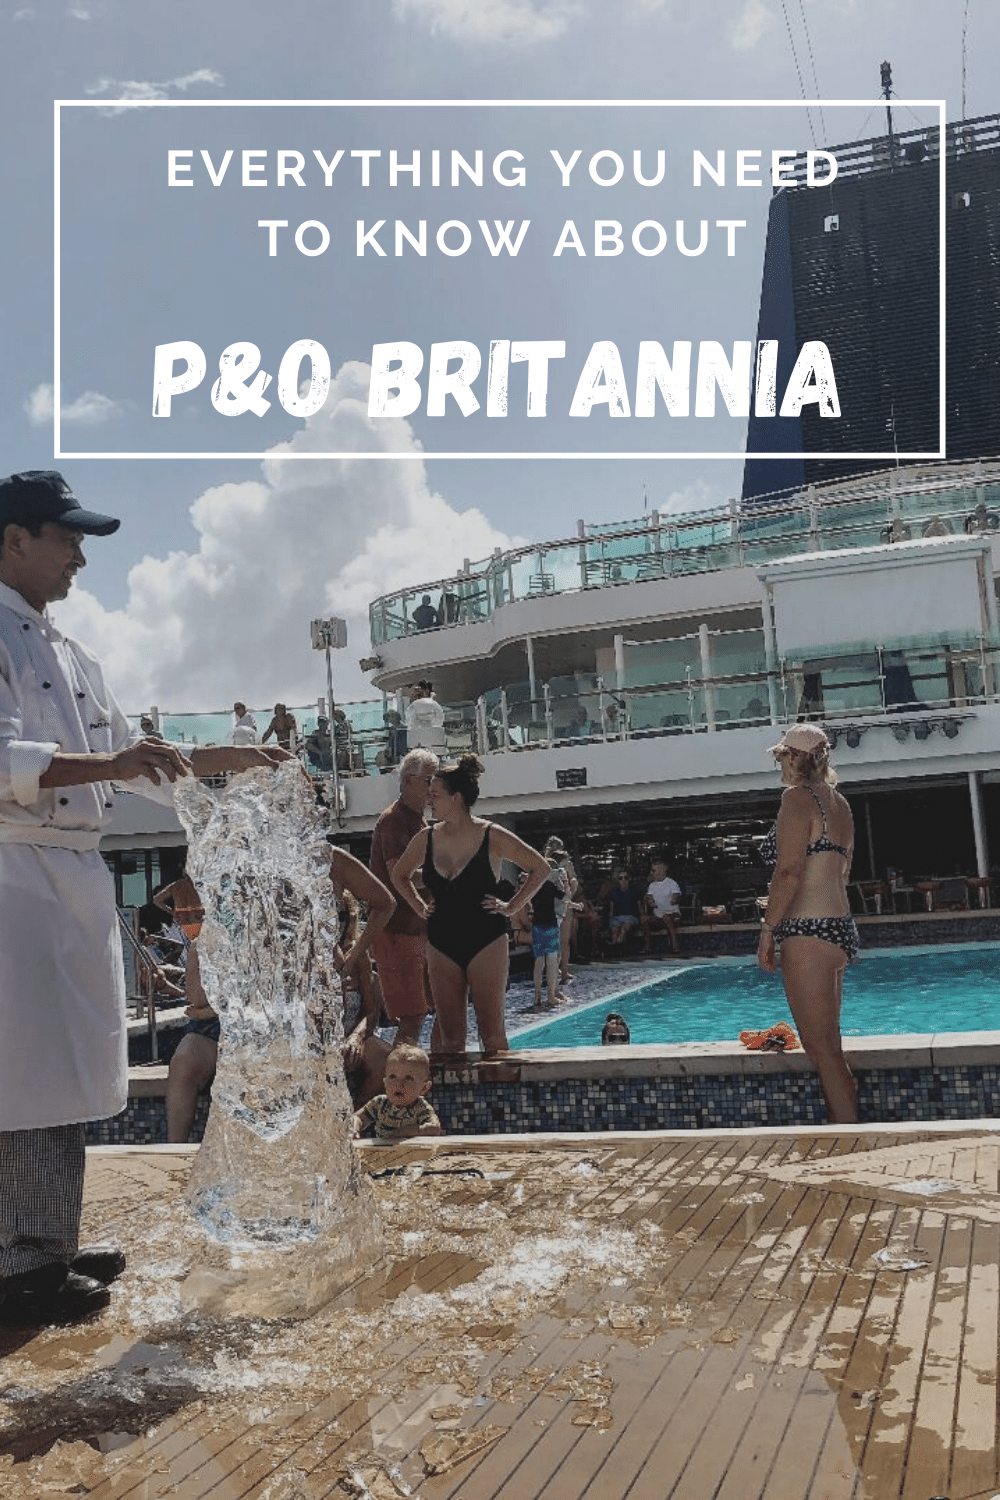 This ultimate guide to P&O Britannia features helpful information about cabins, dining, entertainment, activities, drinks, WiFi and venues.